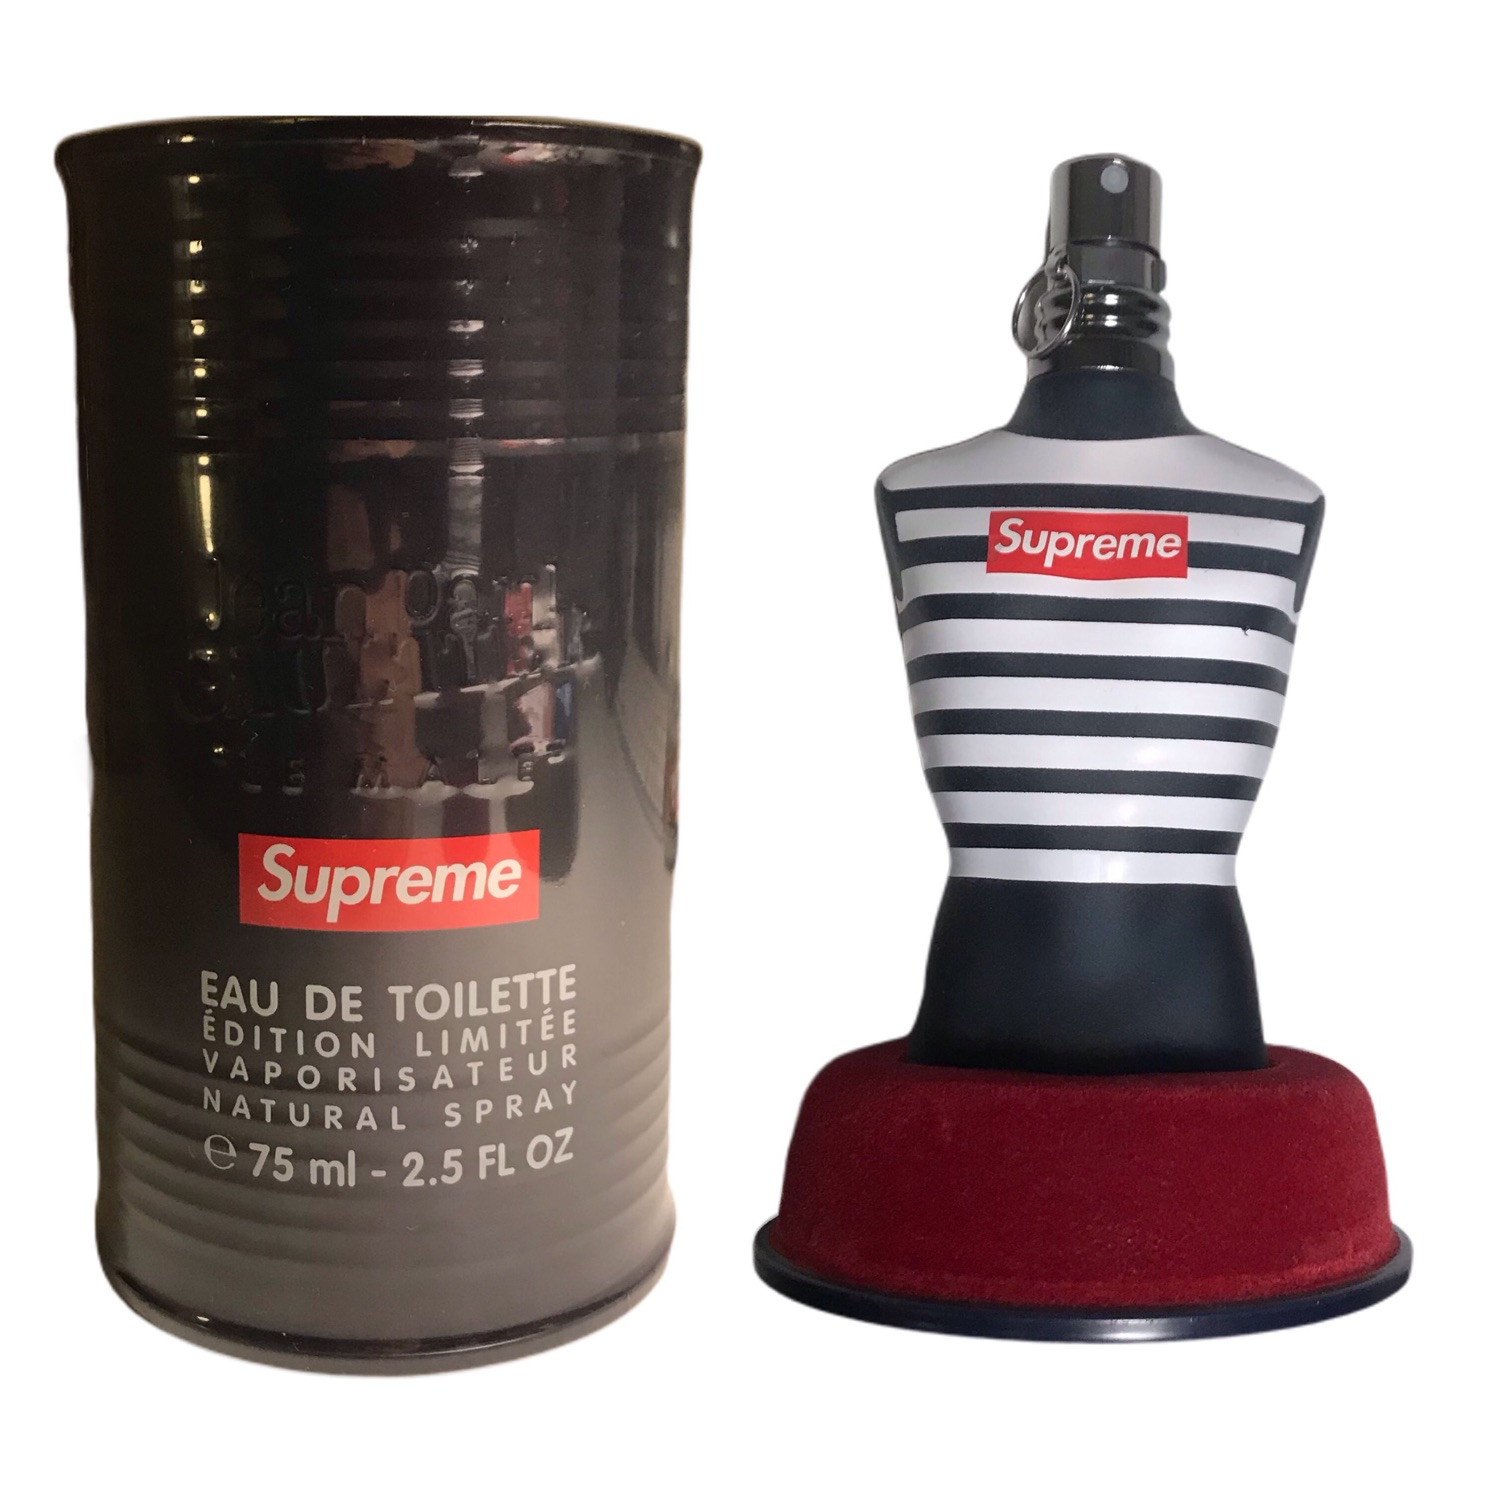 Supreme Jpg Cologne Le Male Fragrance